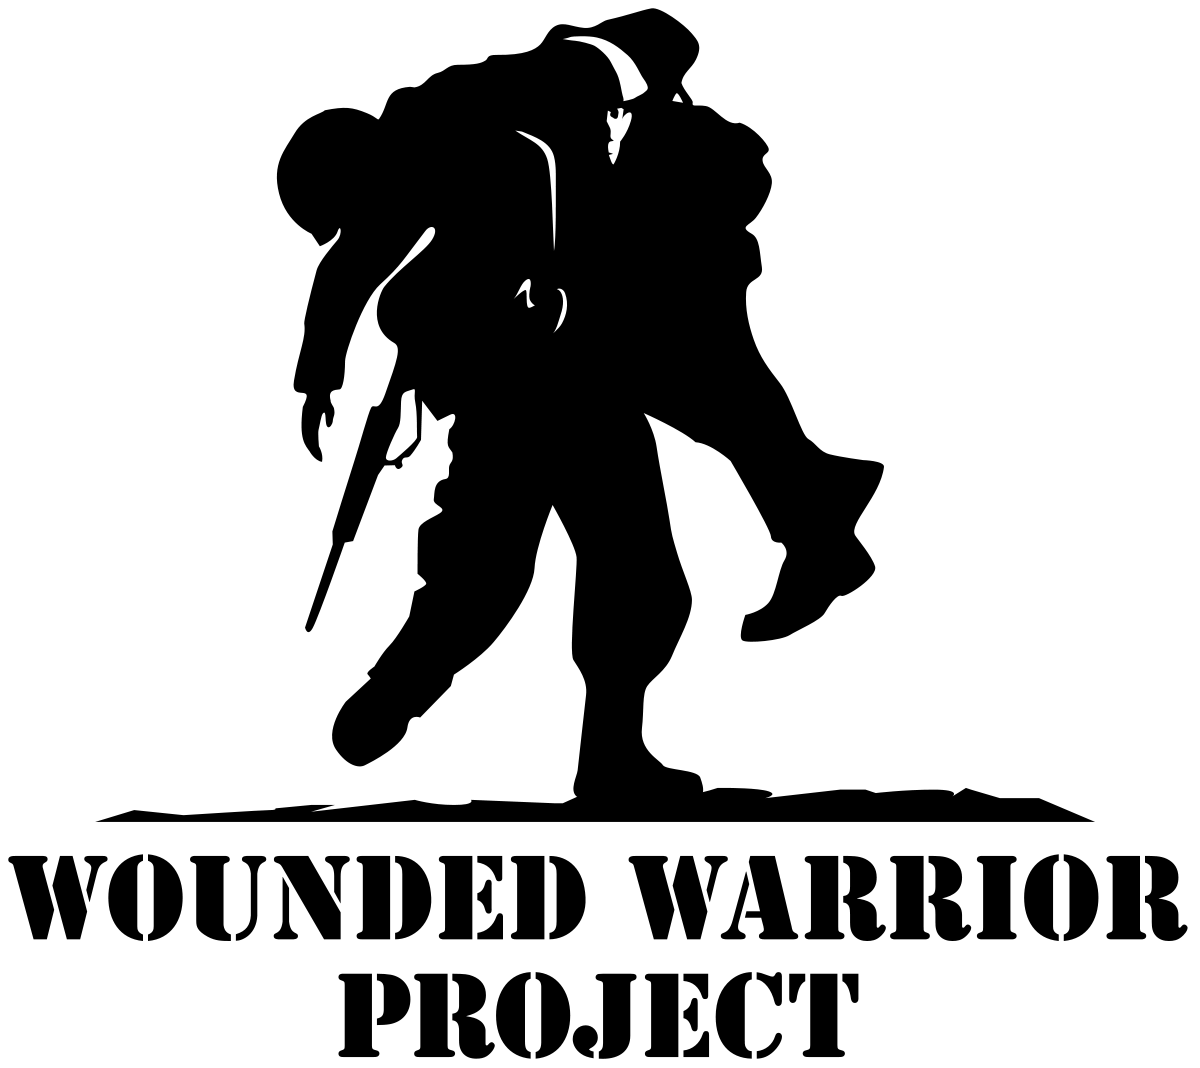 WOUNDED WARRIOR PROJECT.png